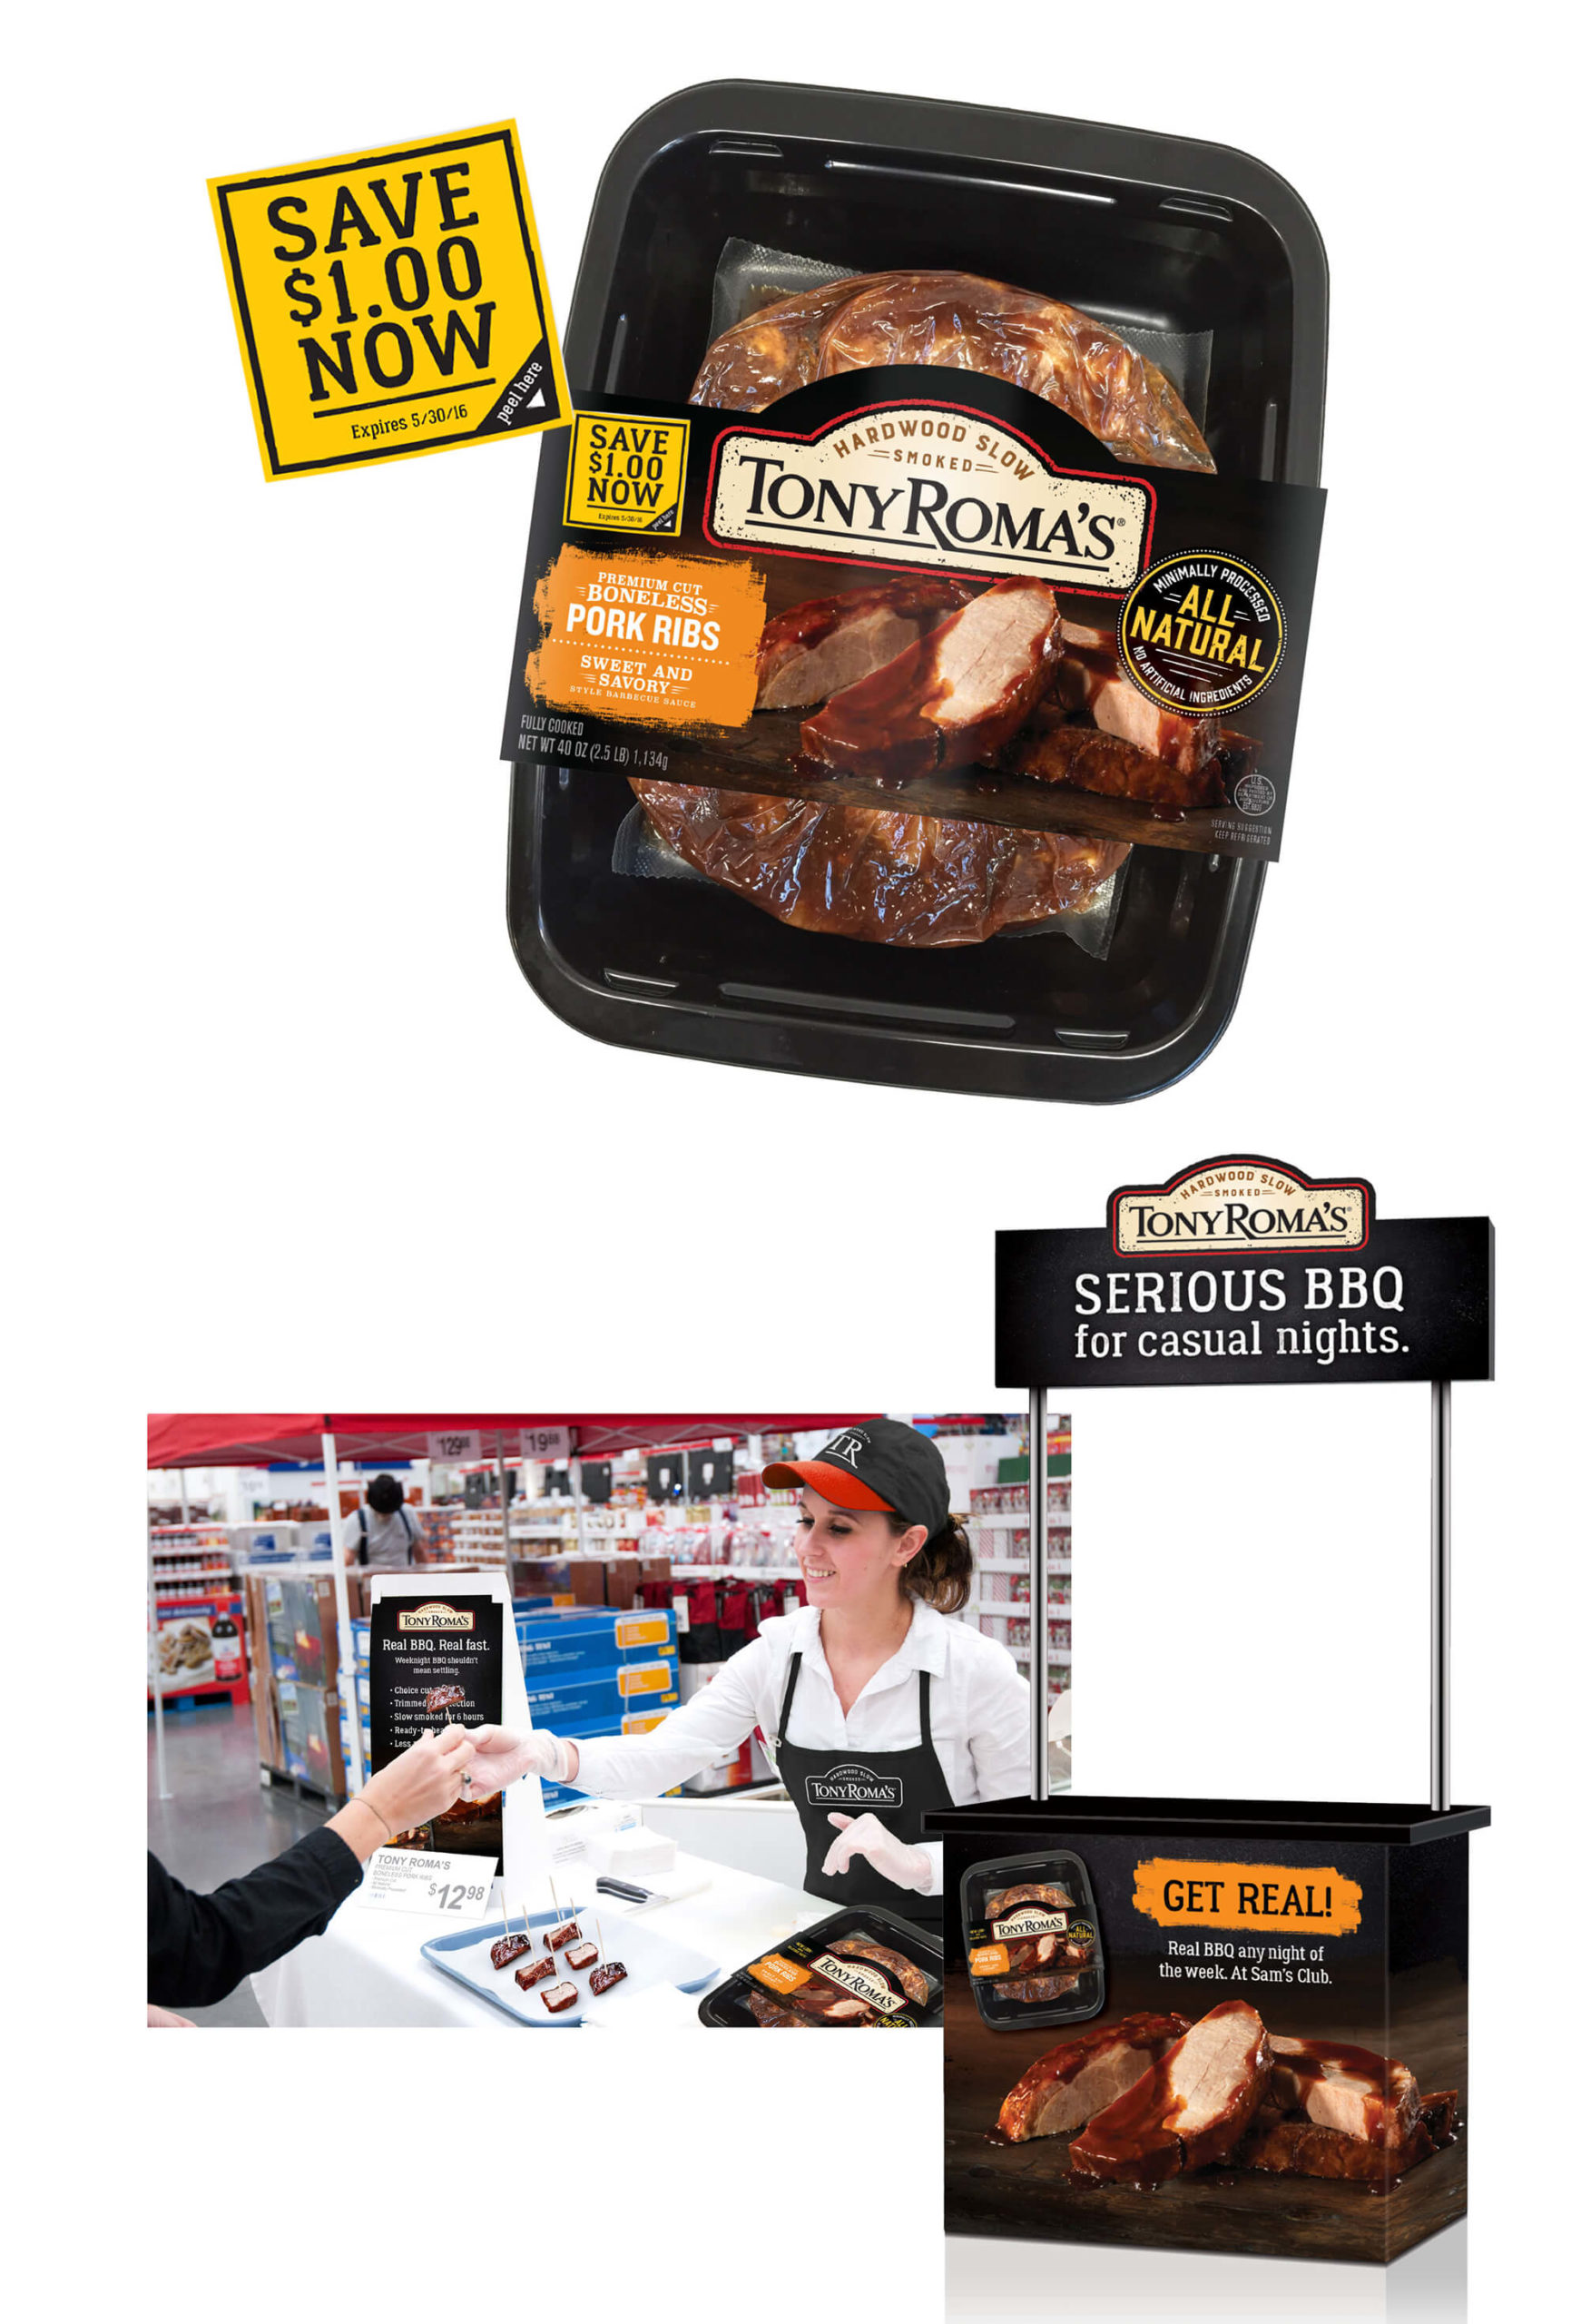 The Tony Roma's marketing campaign included on-pack coupons to encourage trial along with sampling at stores across the country.